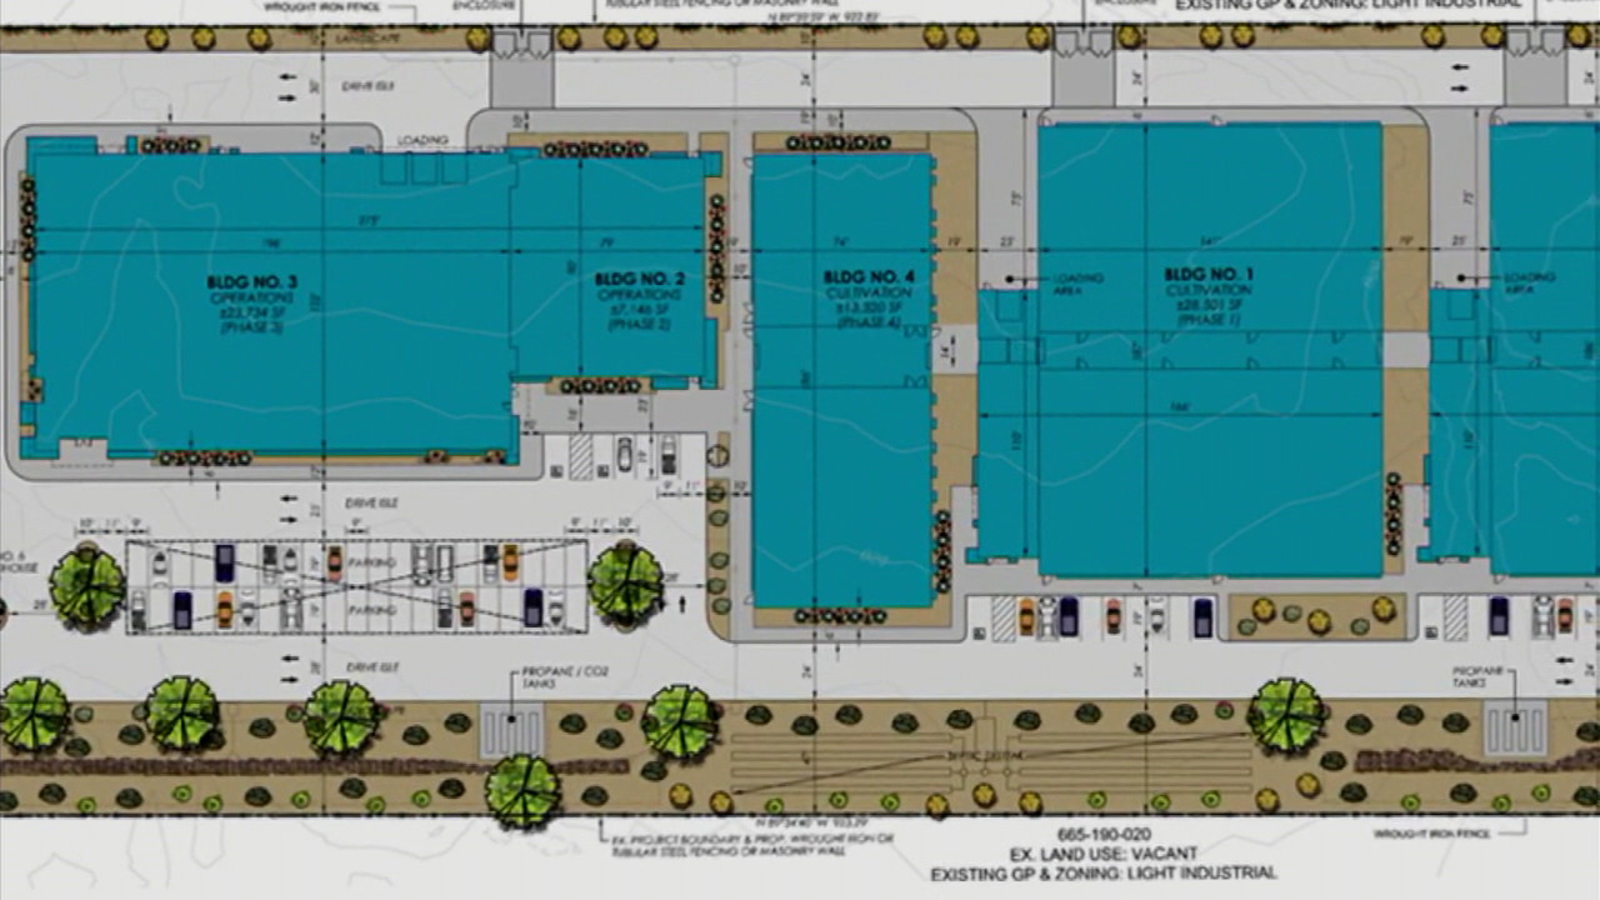 desert hot springs zoning map Gfarmalabs Plans To Build Nation S Largest Commercial Cannabis desert hot springs zoning map